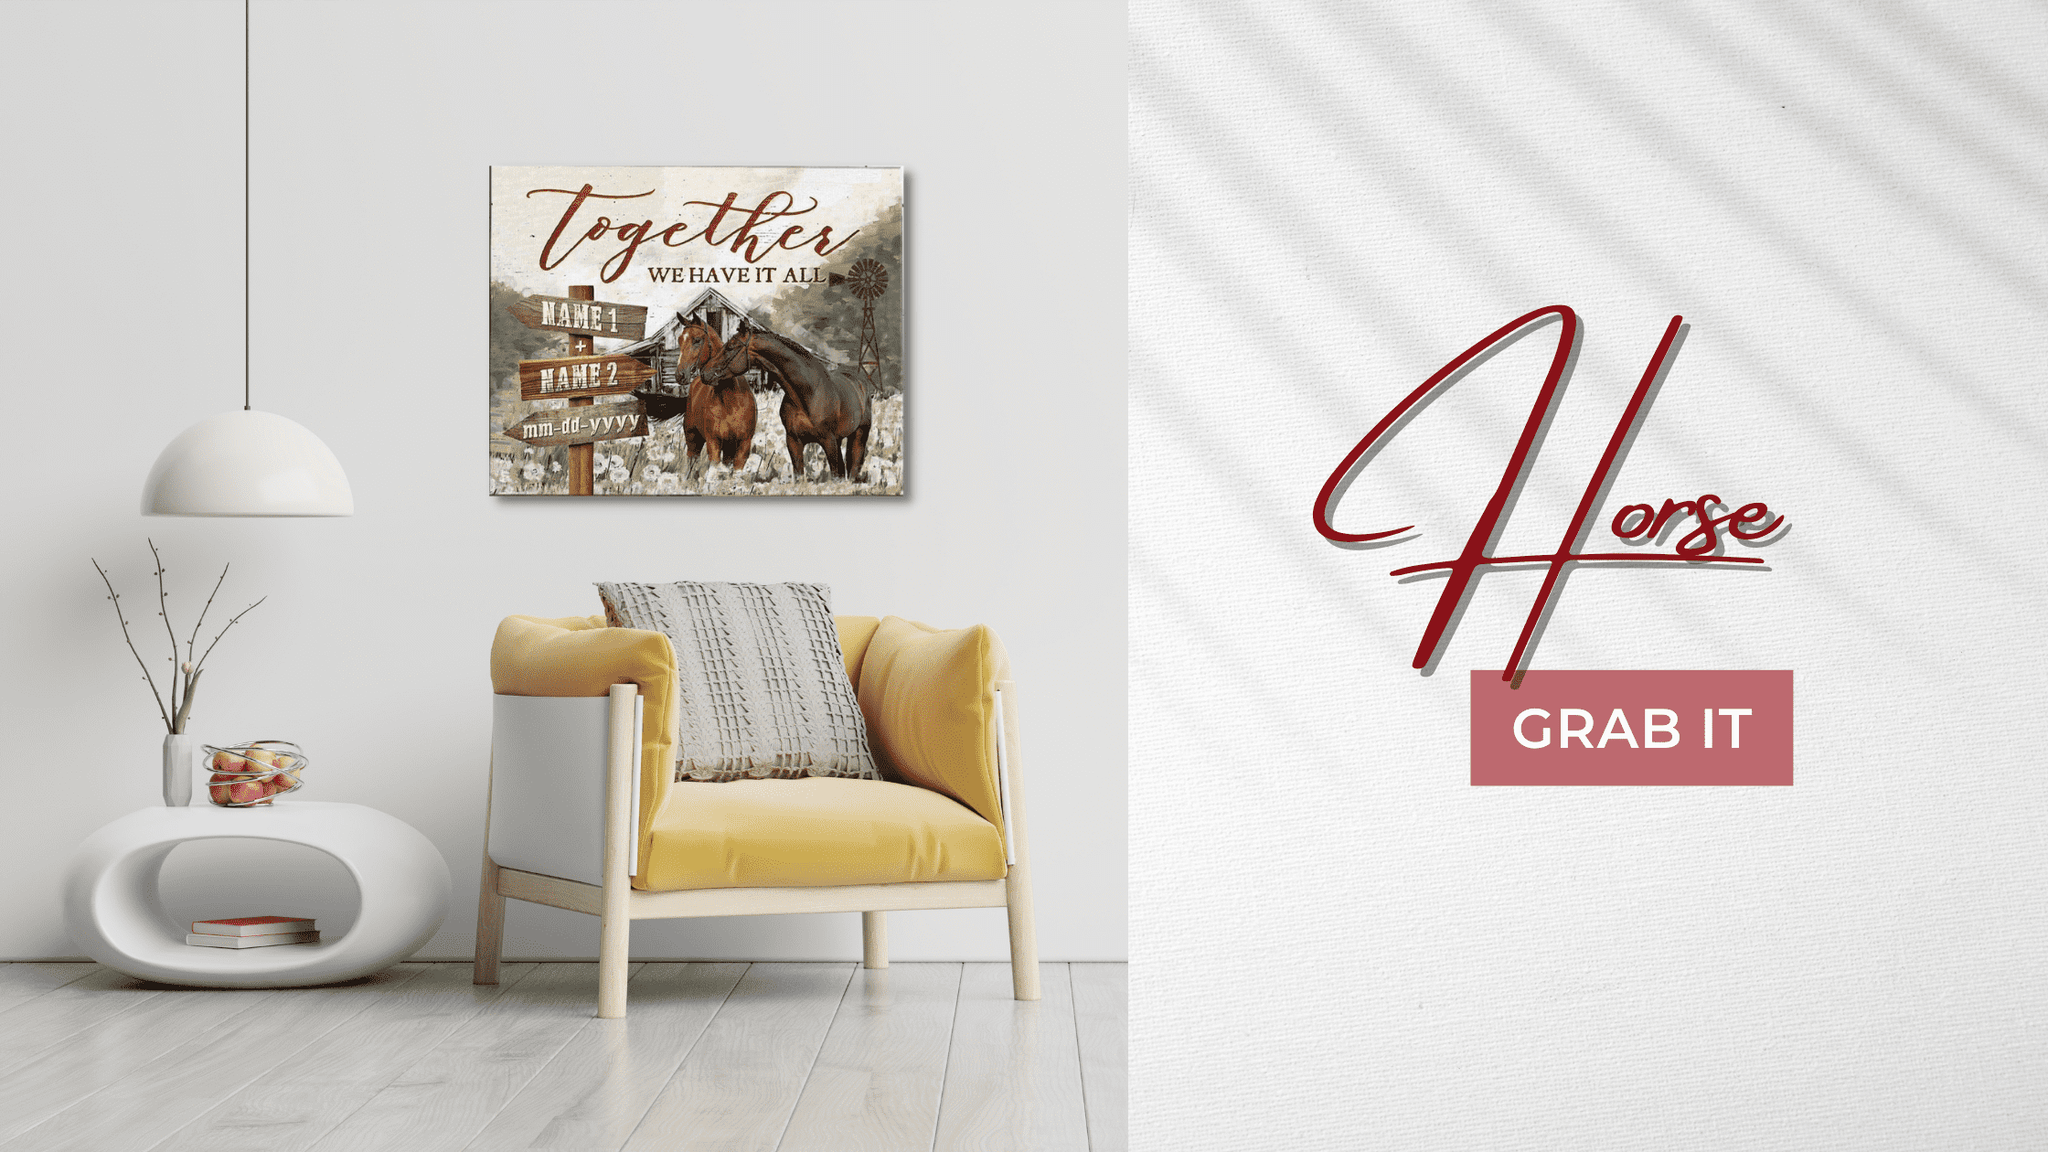 Together We Have It All Wall Art | Horse Wall Decor | Personalized Canvas Art